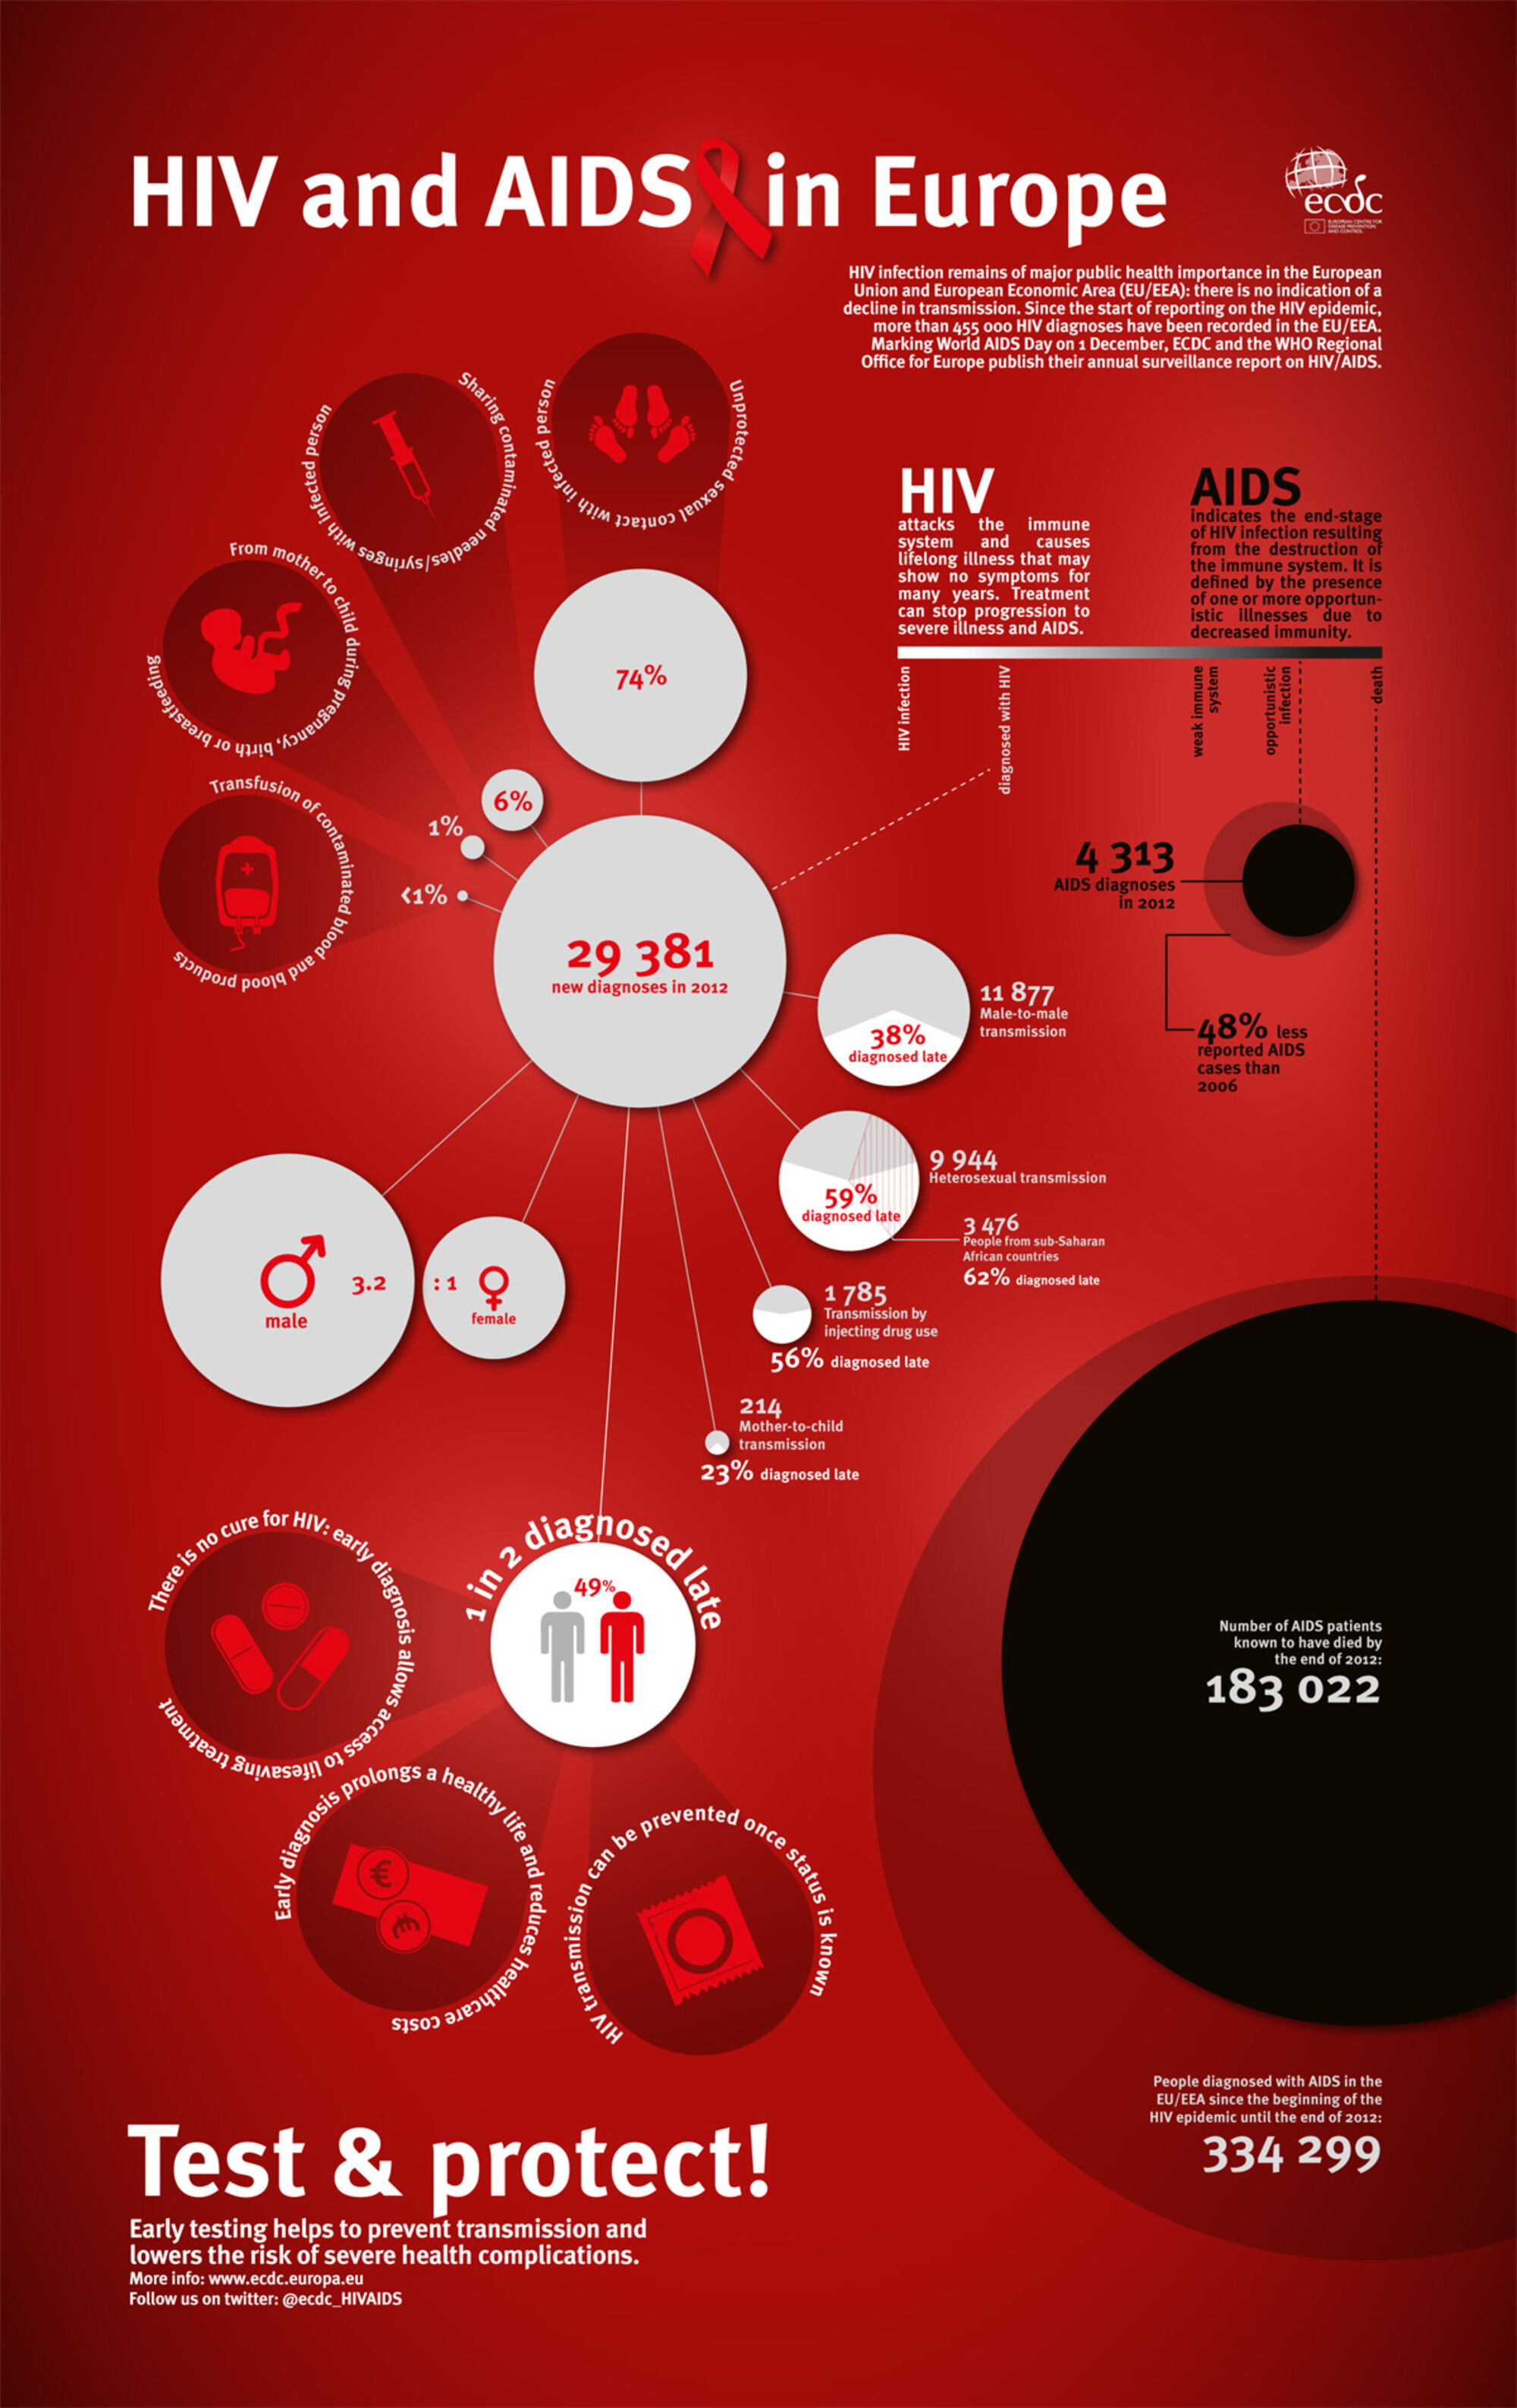 the history and causes of aids Robert gallo and luc montagnier identified hiv — the virus that causes aids — in 1983 the three decades since have seen wide medical and cultural advancements in our understanding of the virus the years have also brought much hardship and controversy here's a photographic history of the aids epidemic in the united states.